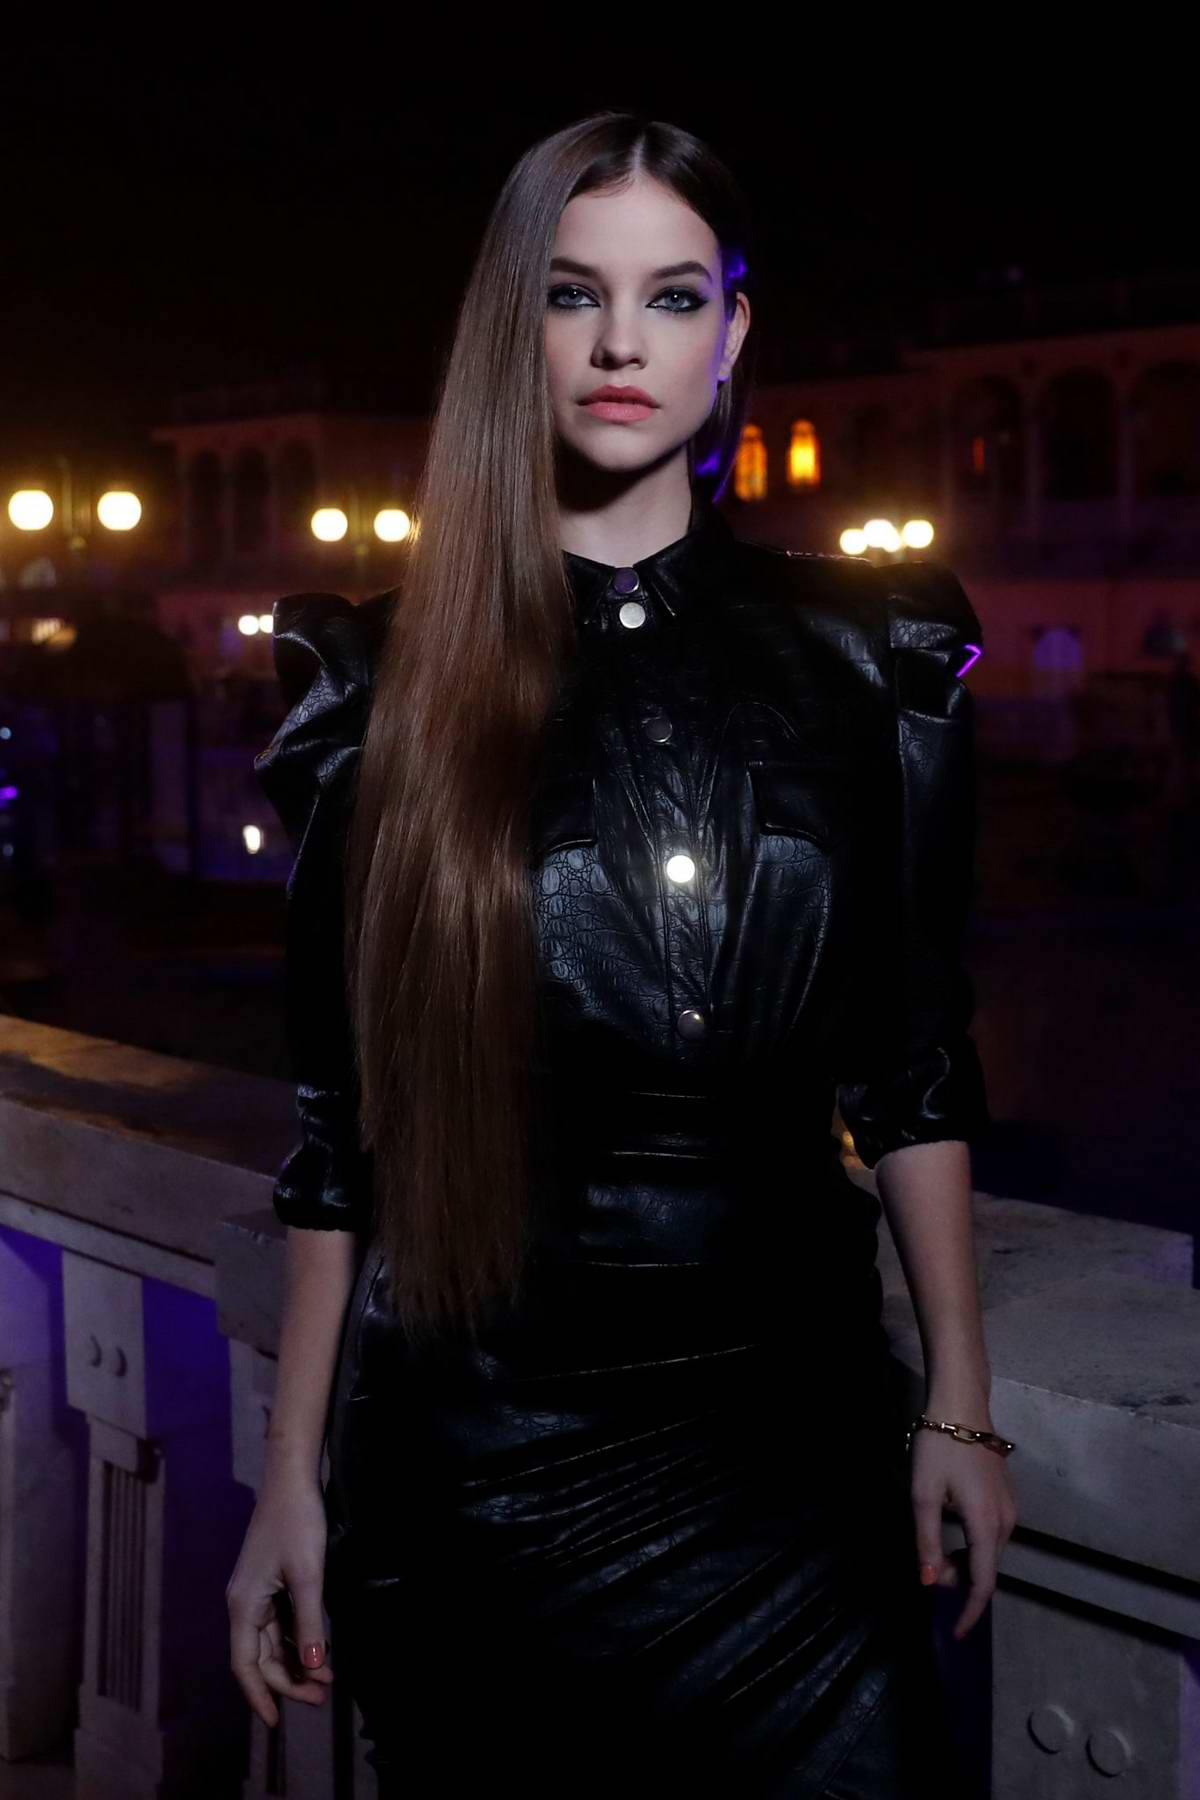 Barbara Palvin attends the 2020 MTV European Music Awards (MTV EMAs 2020) in Budapest, Hungary